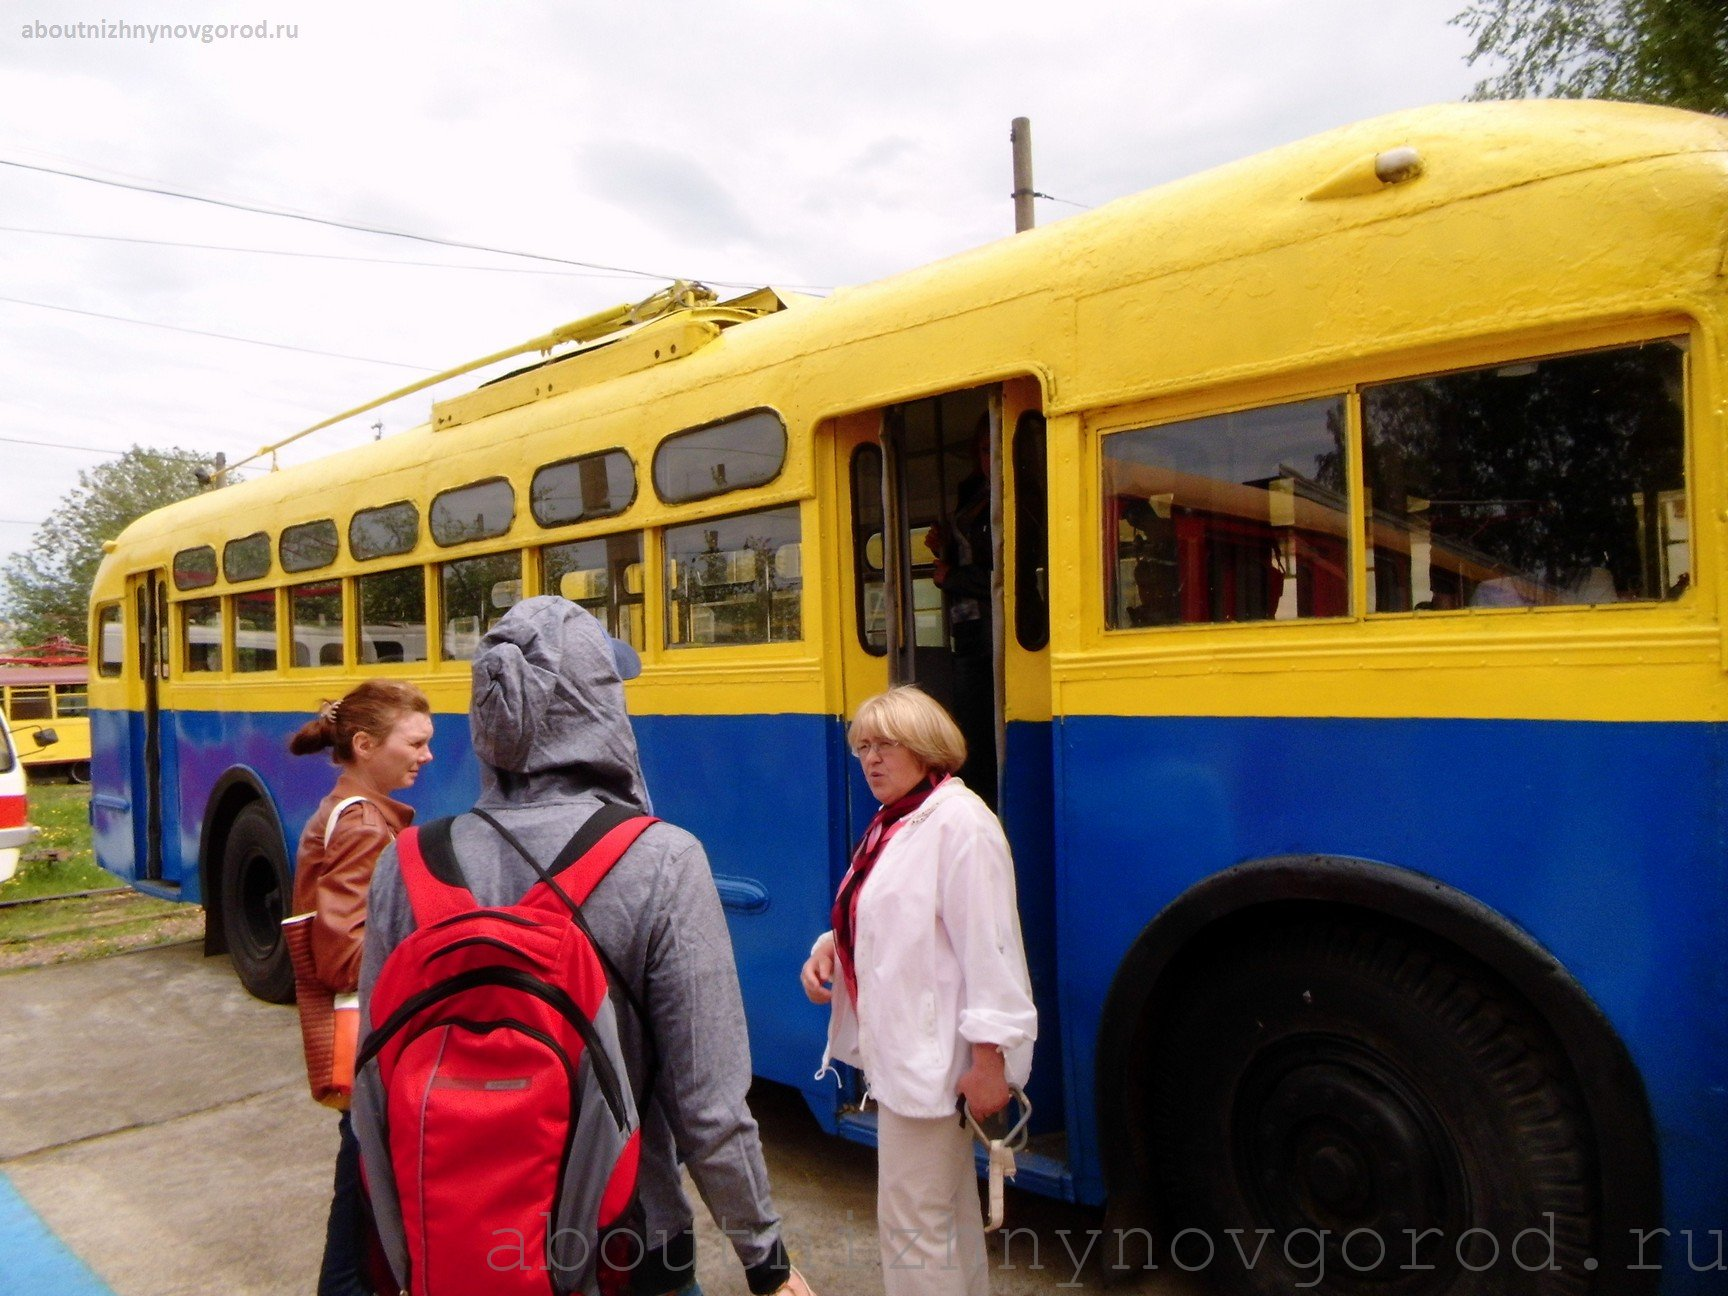 The guide tells how appeared in Nizhny Novgorod the first trolleybus.